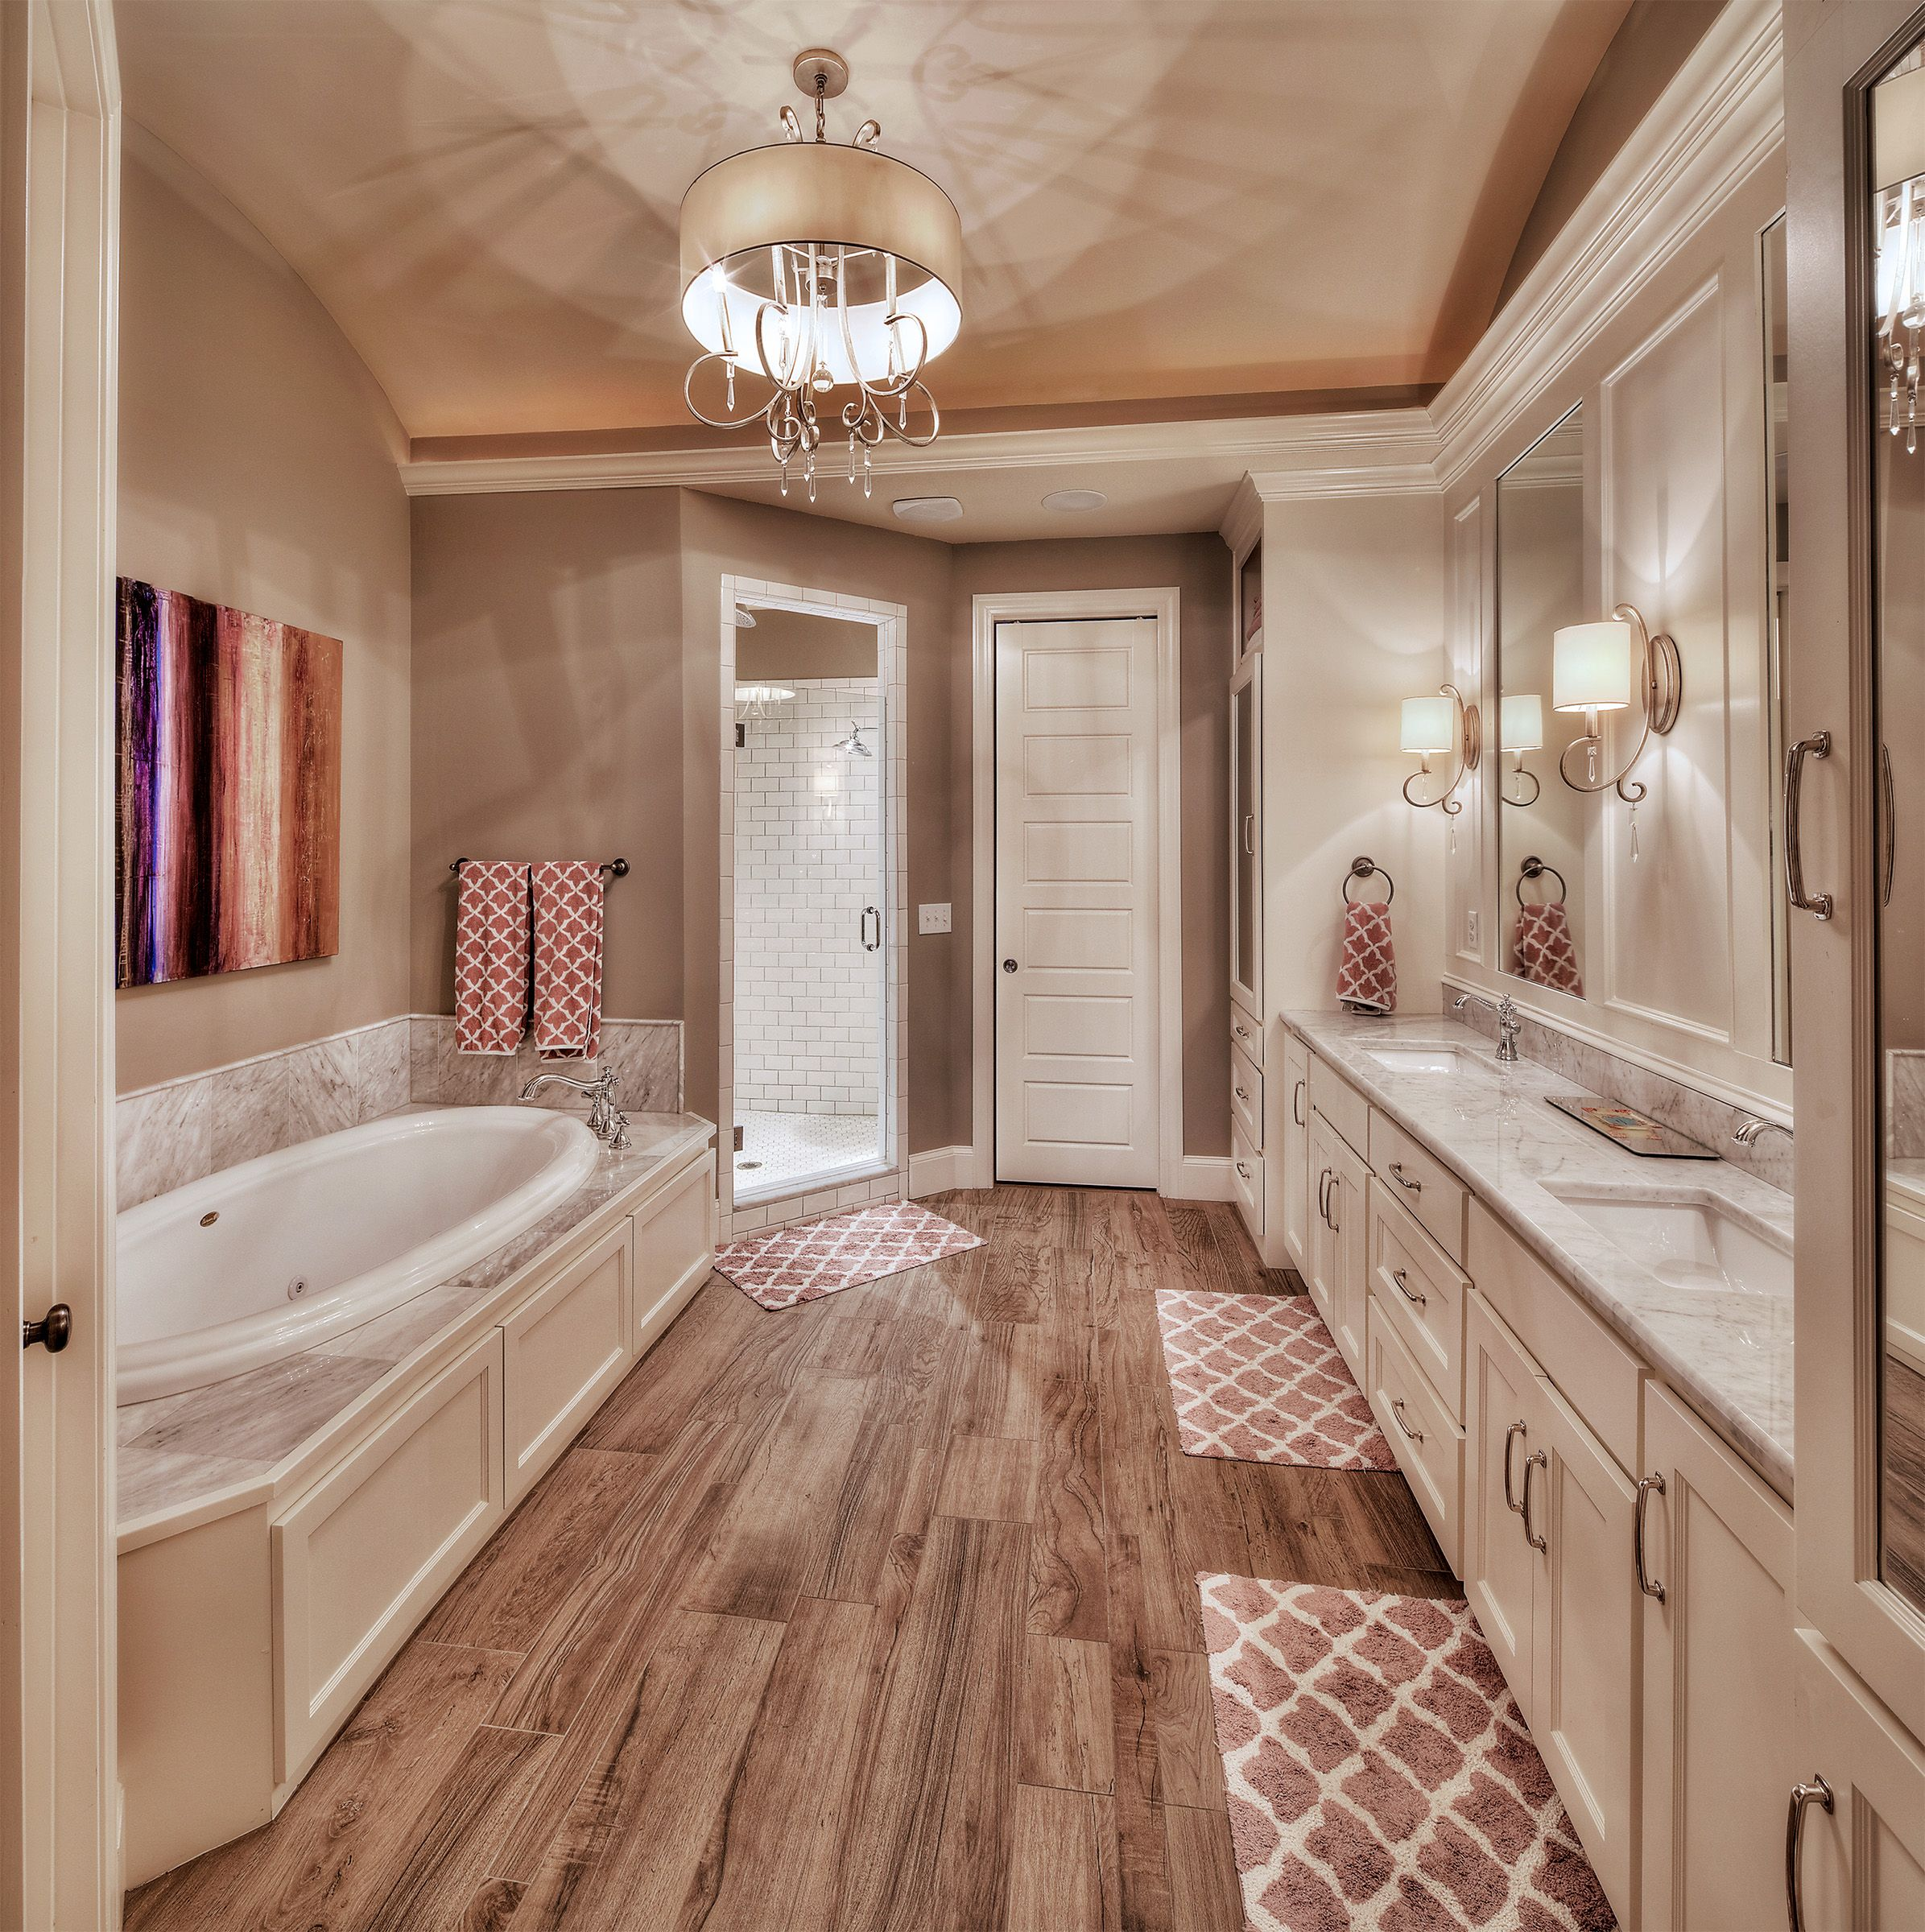 Master Bathroom Hardwood Floors Large Tub His And Her Sink Home Sweet Home Pinterest